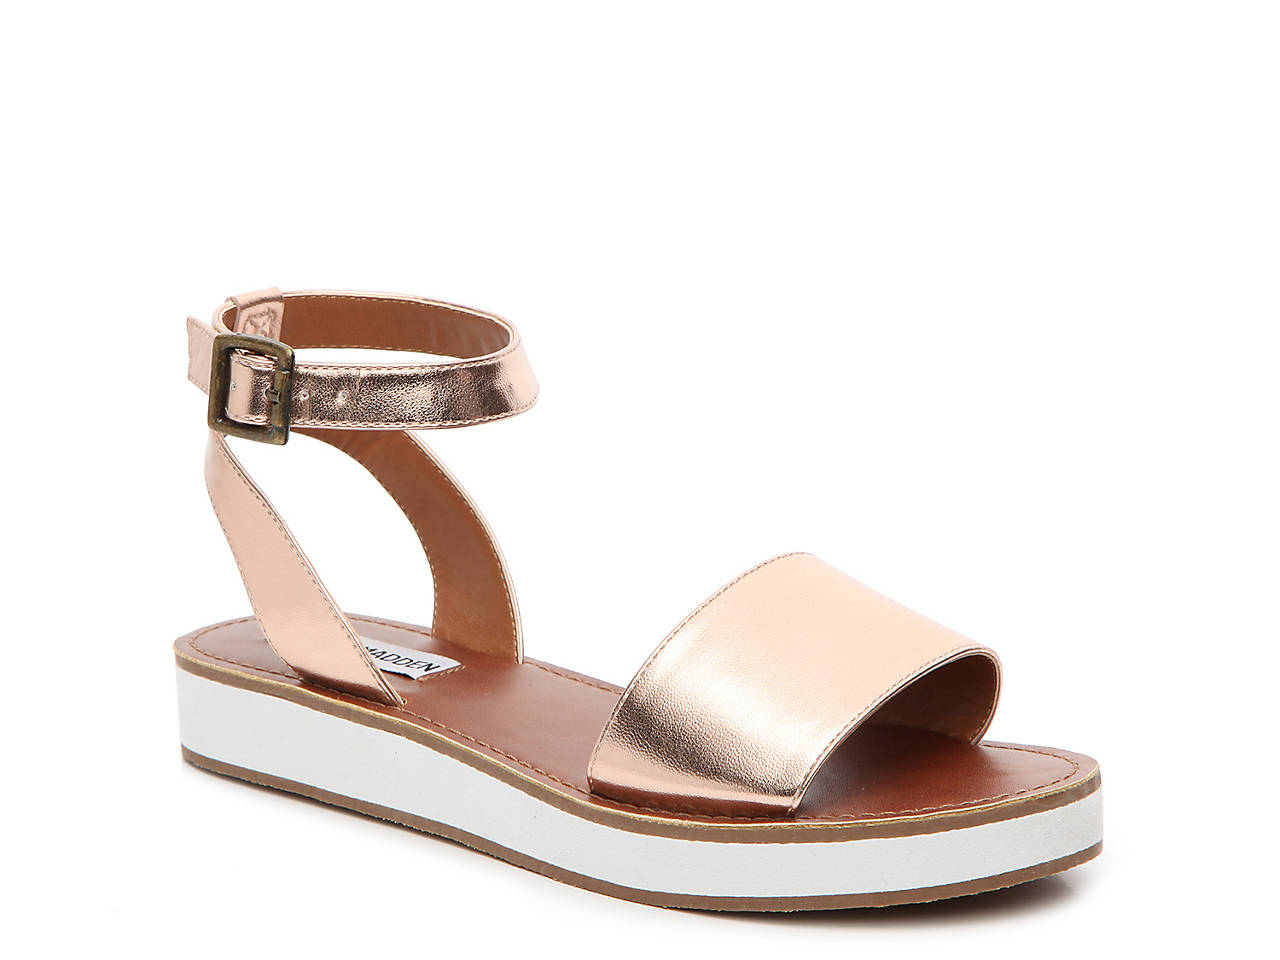 18857168a38 Steve Madden Miley Wedge Sandal Women s Shoes